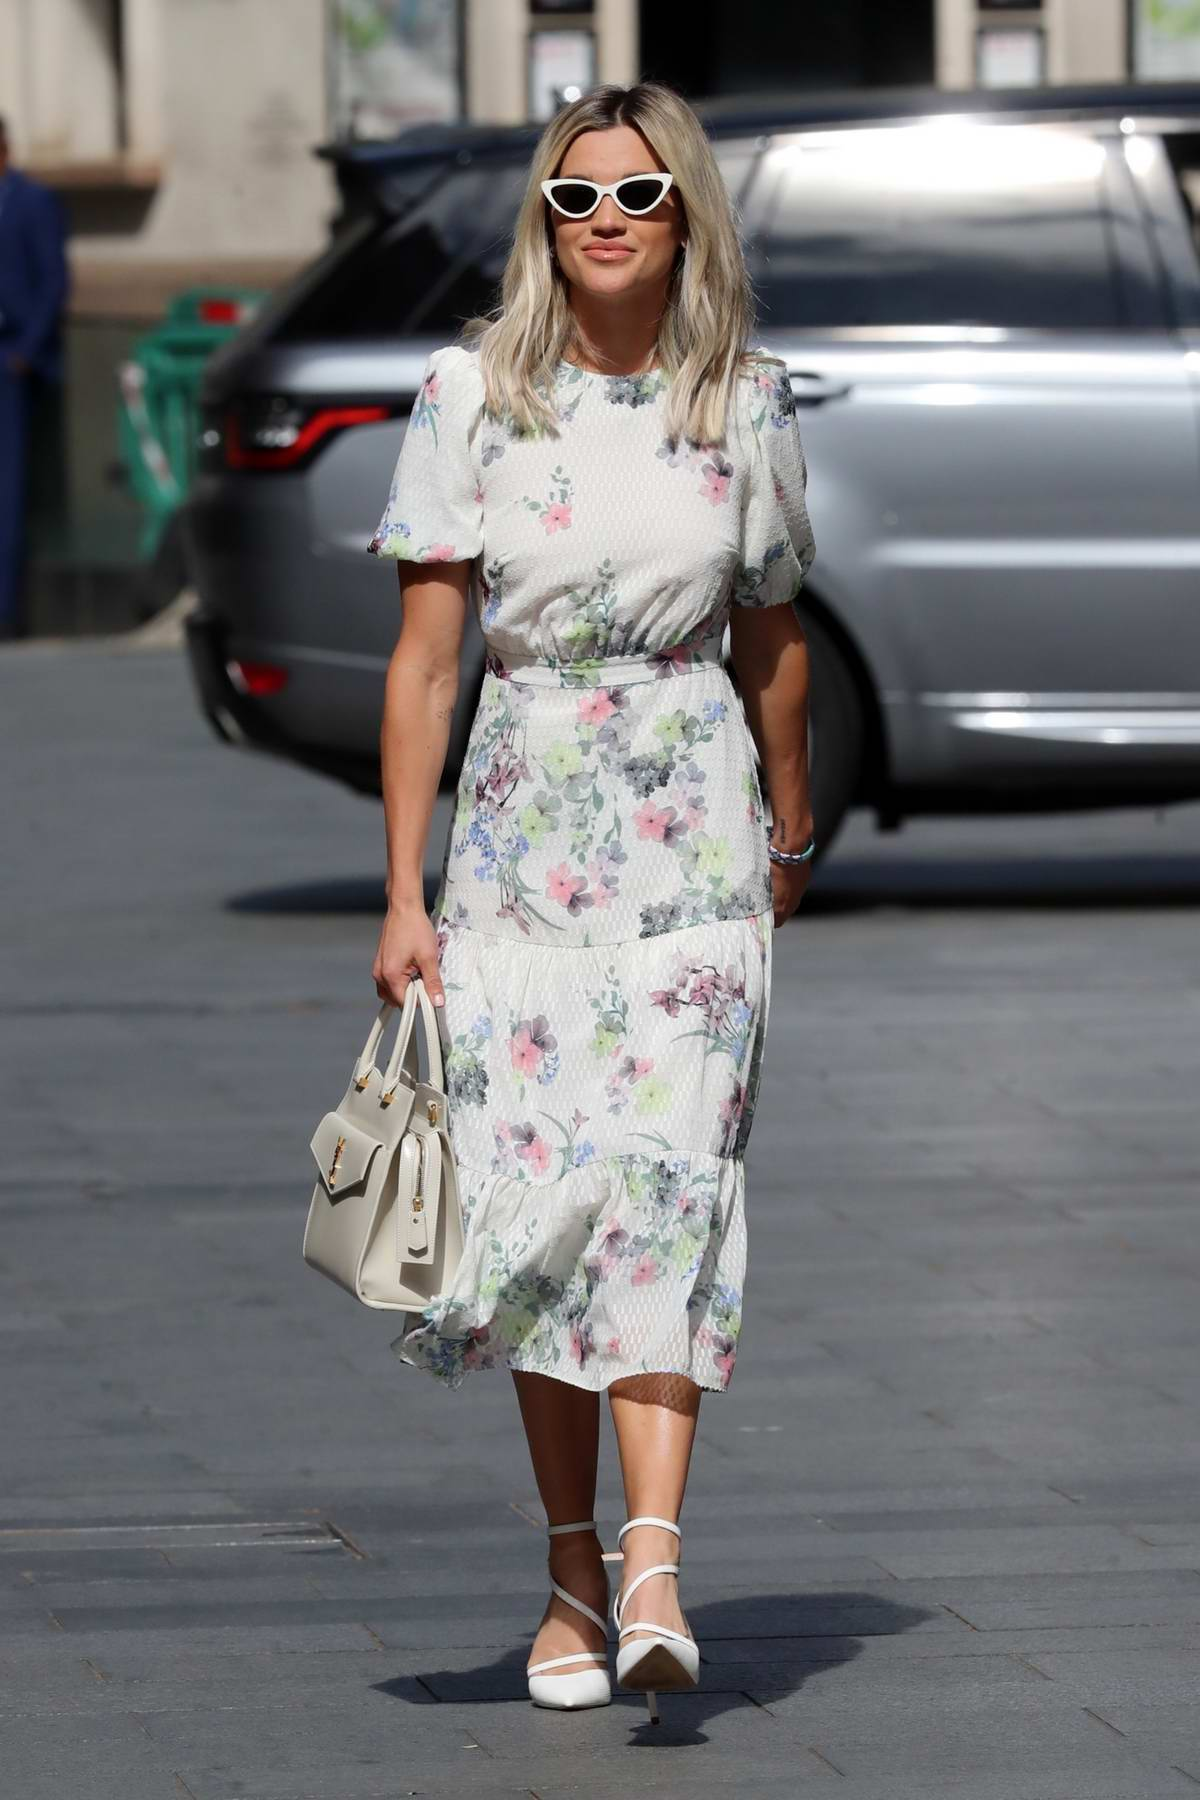 Ashley Roberts looks great in a floral print dress as she leaves the Global Radio studios in London, UK